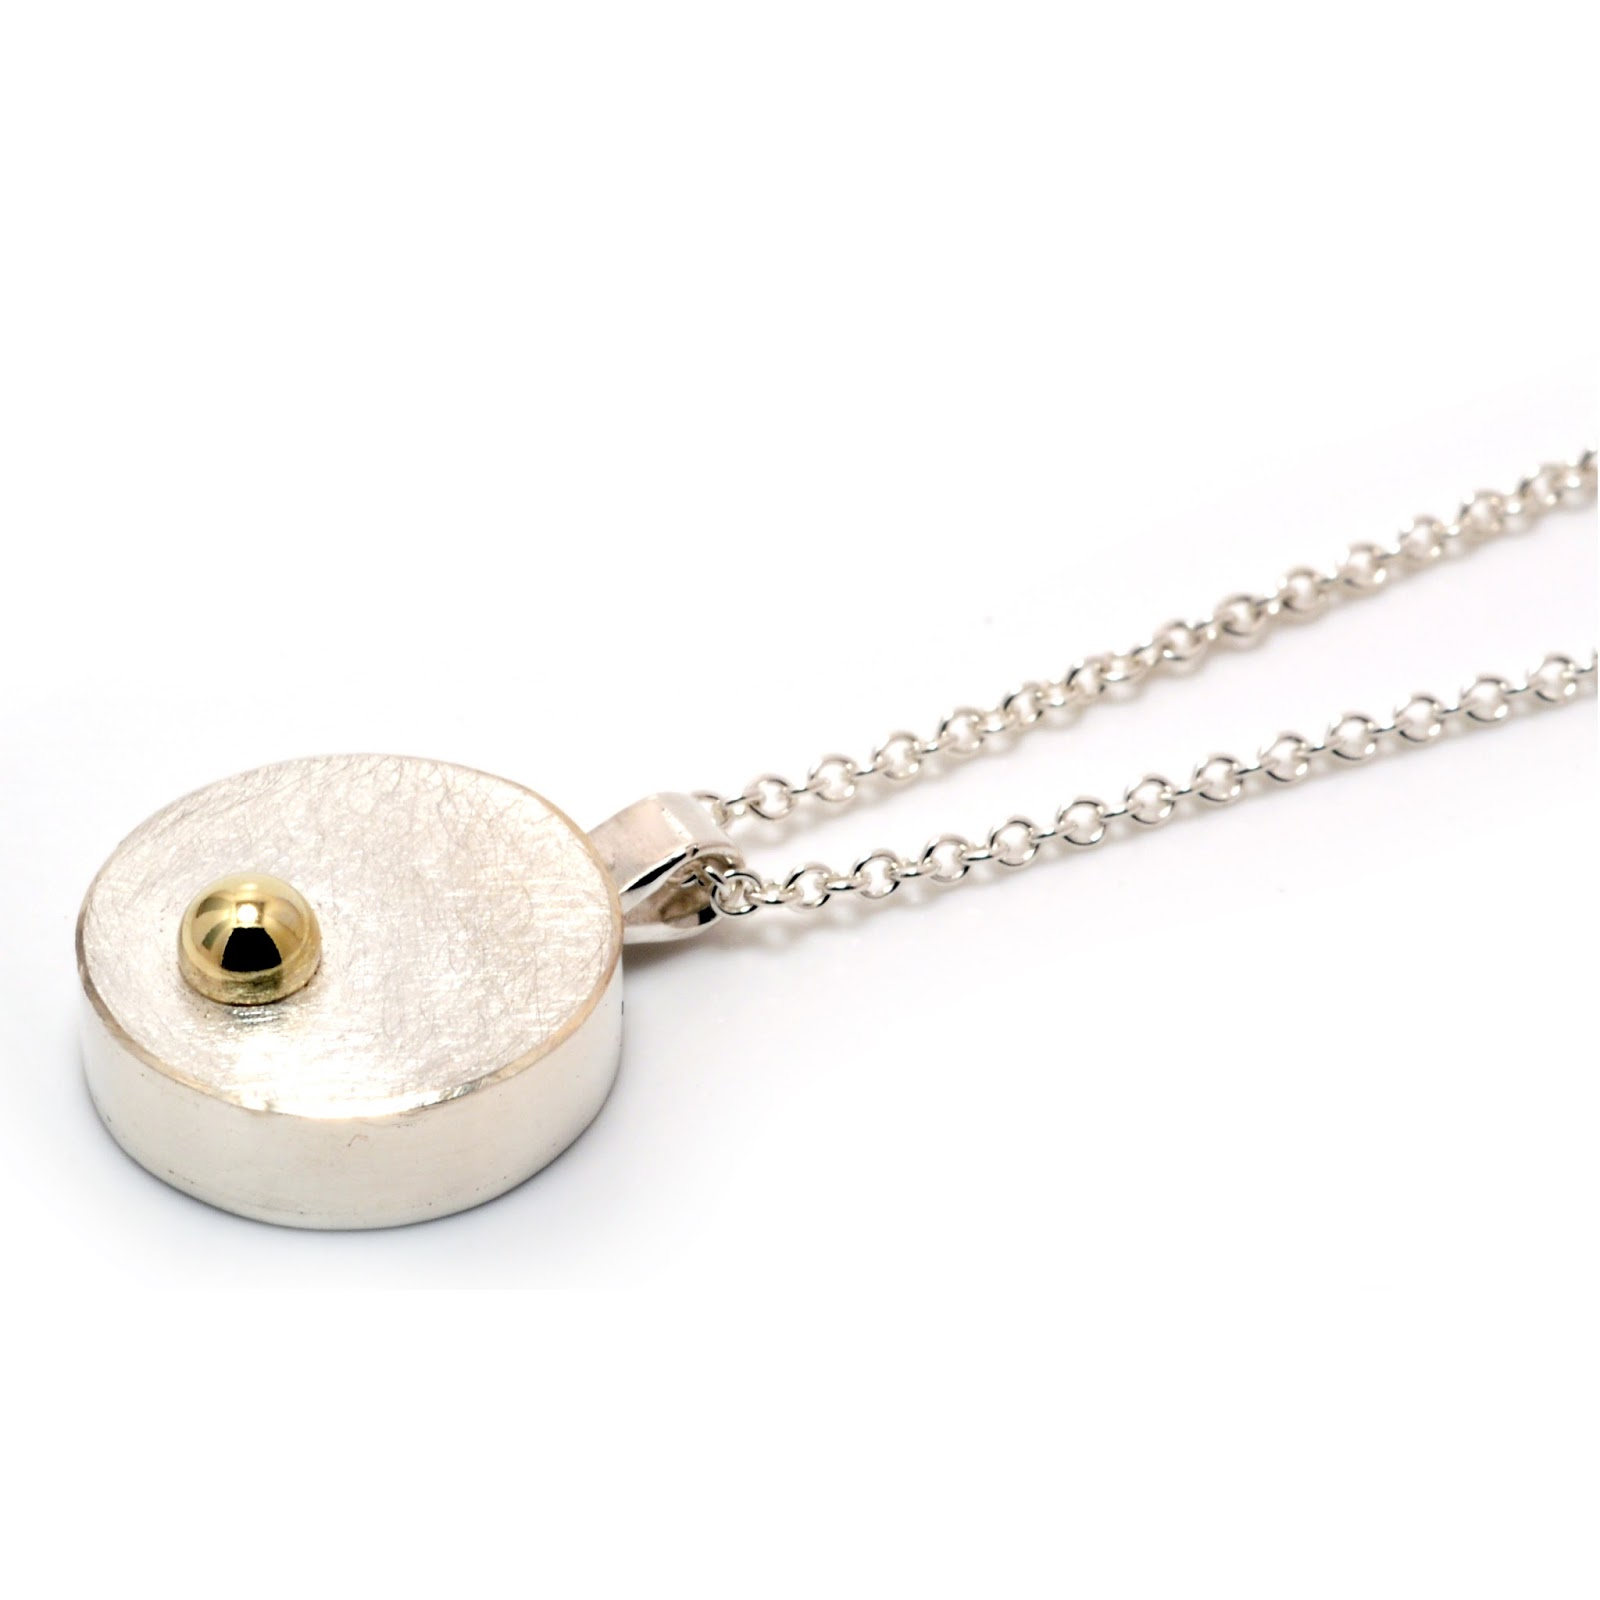 http://jam-eton.co.uk/machi-de-waard-silver-with-embedded-gold-ball-mini-pendant.html